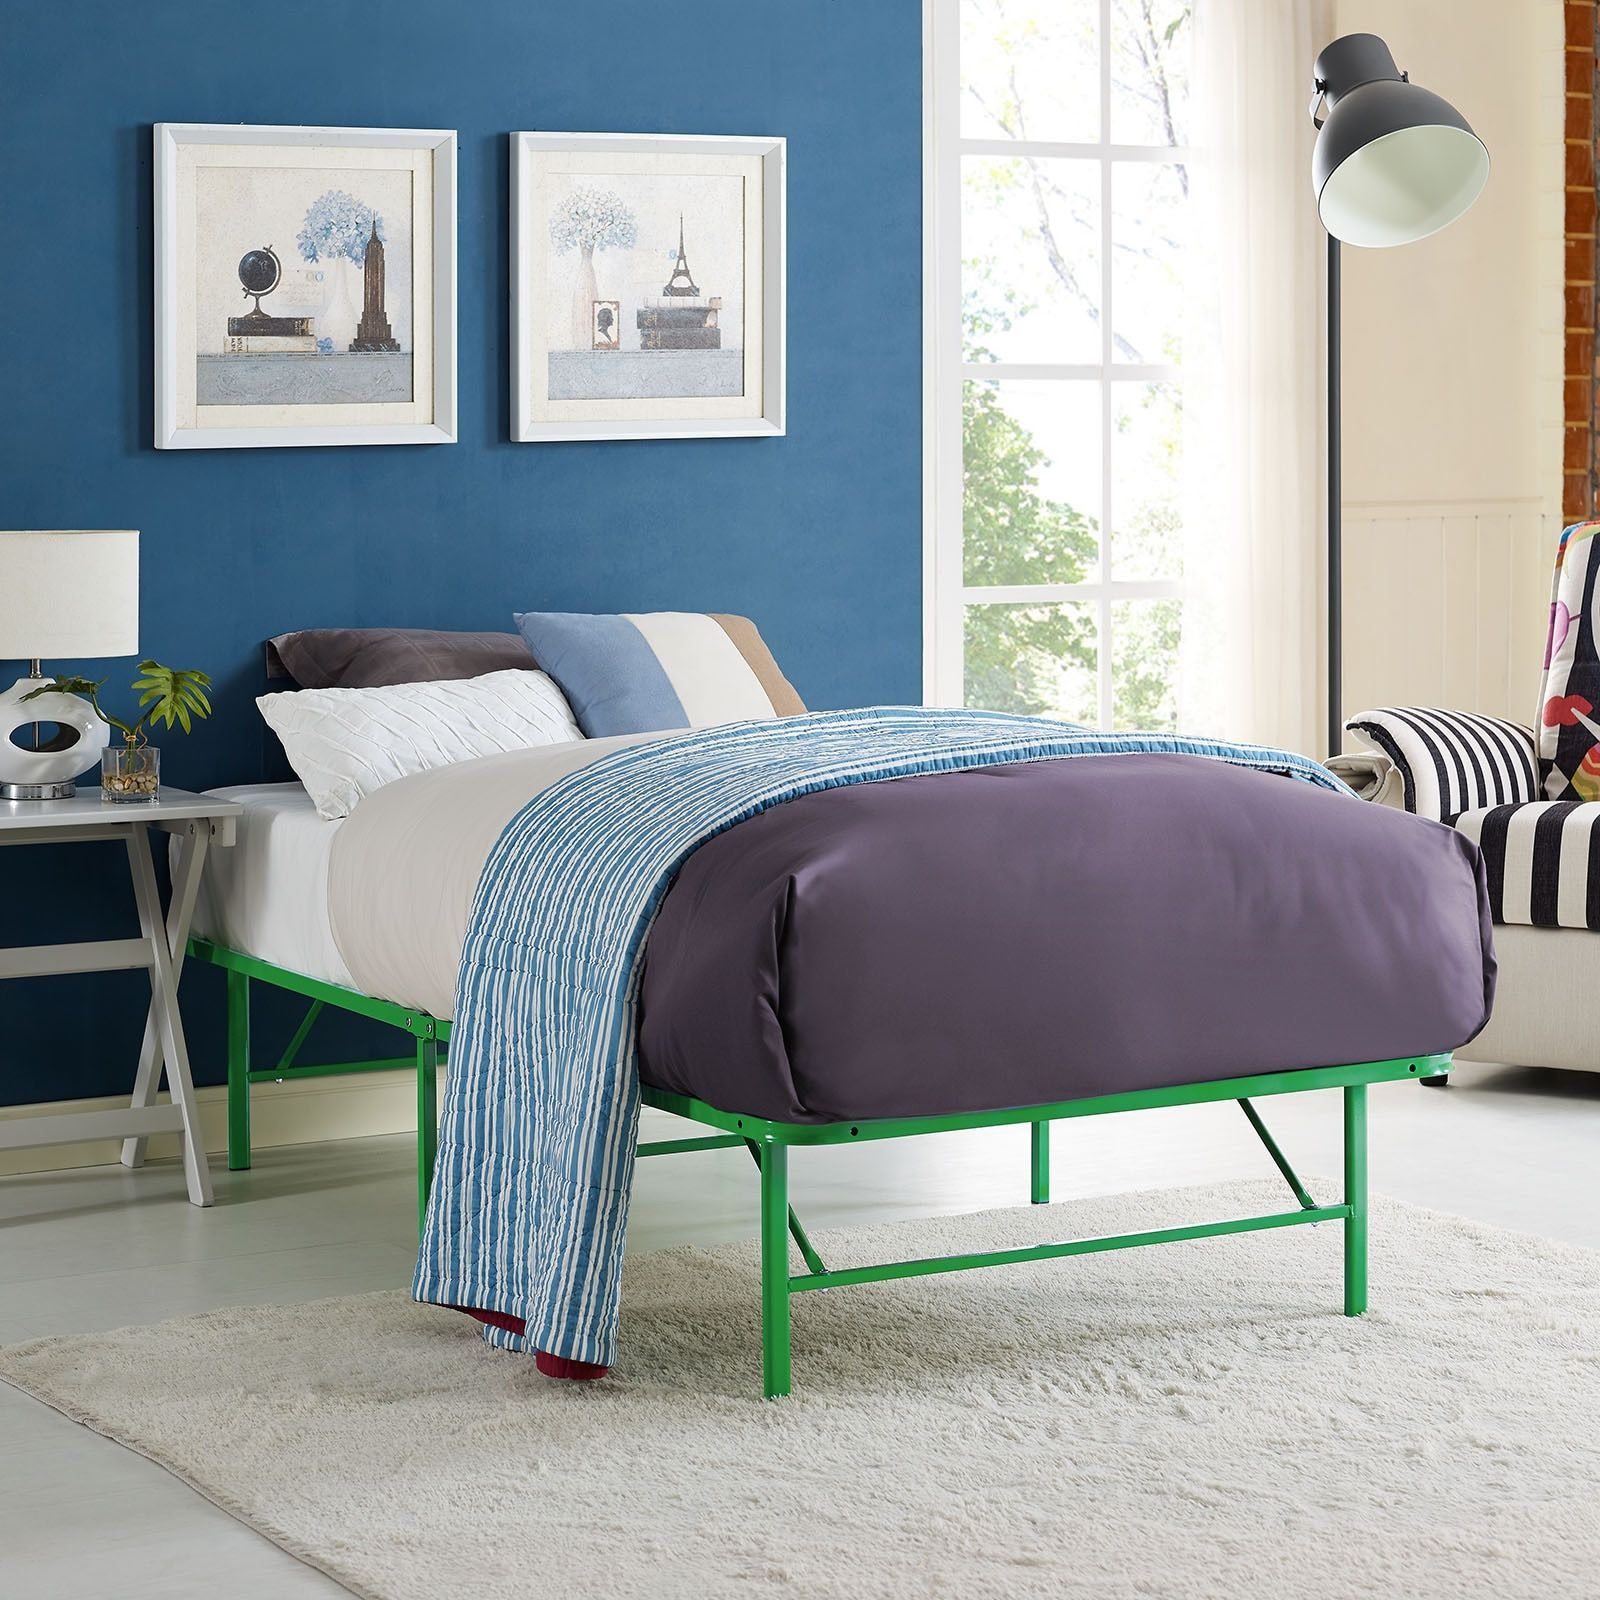 Modway Horizon Stainless Steel Twin Bed Frame in Green (Twin)